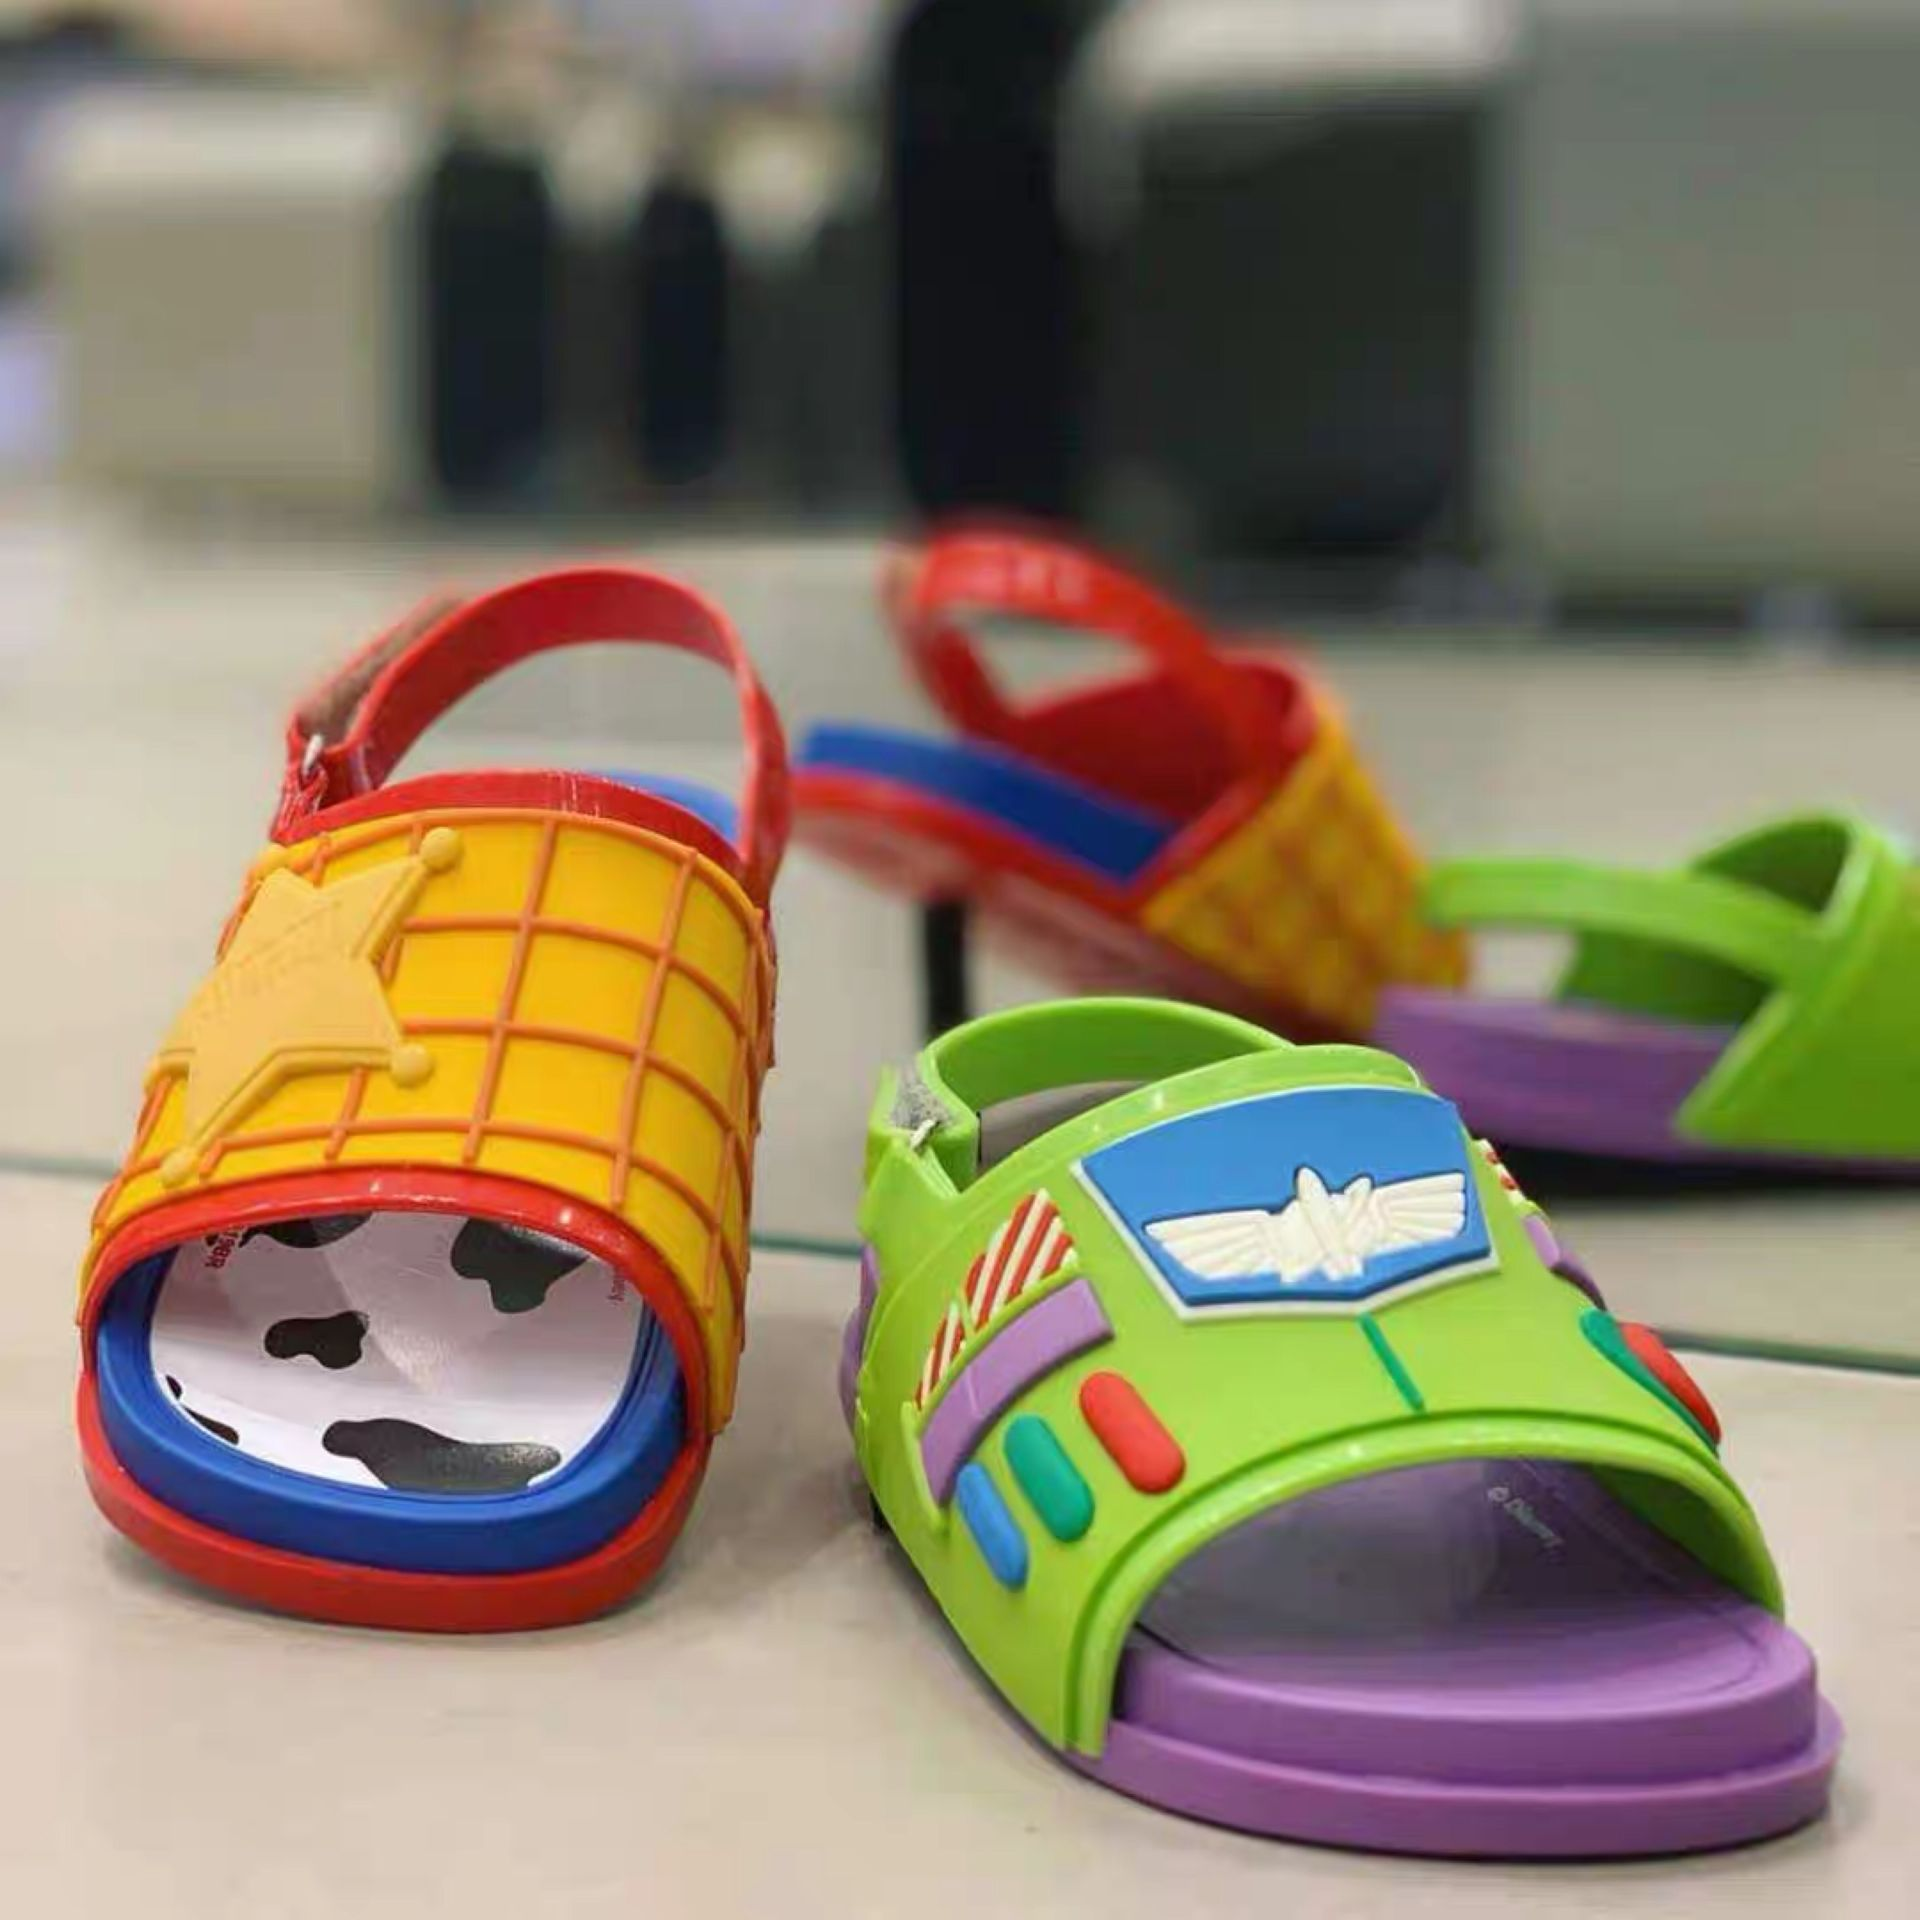 Mini Melissa Boy's Summer Sandals Toy Story Mania Kids Jelly Shoes Fashion Children's Toddler Candy Beach Sandals HMI004